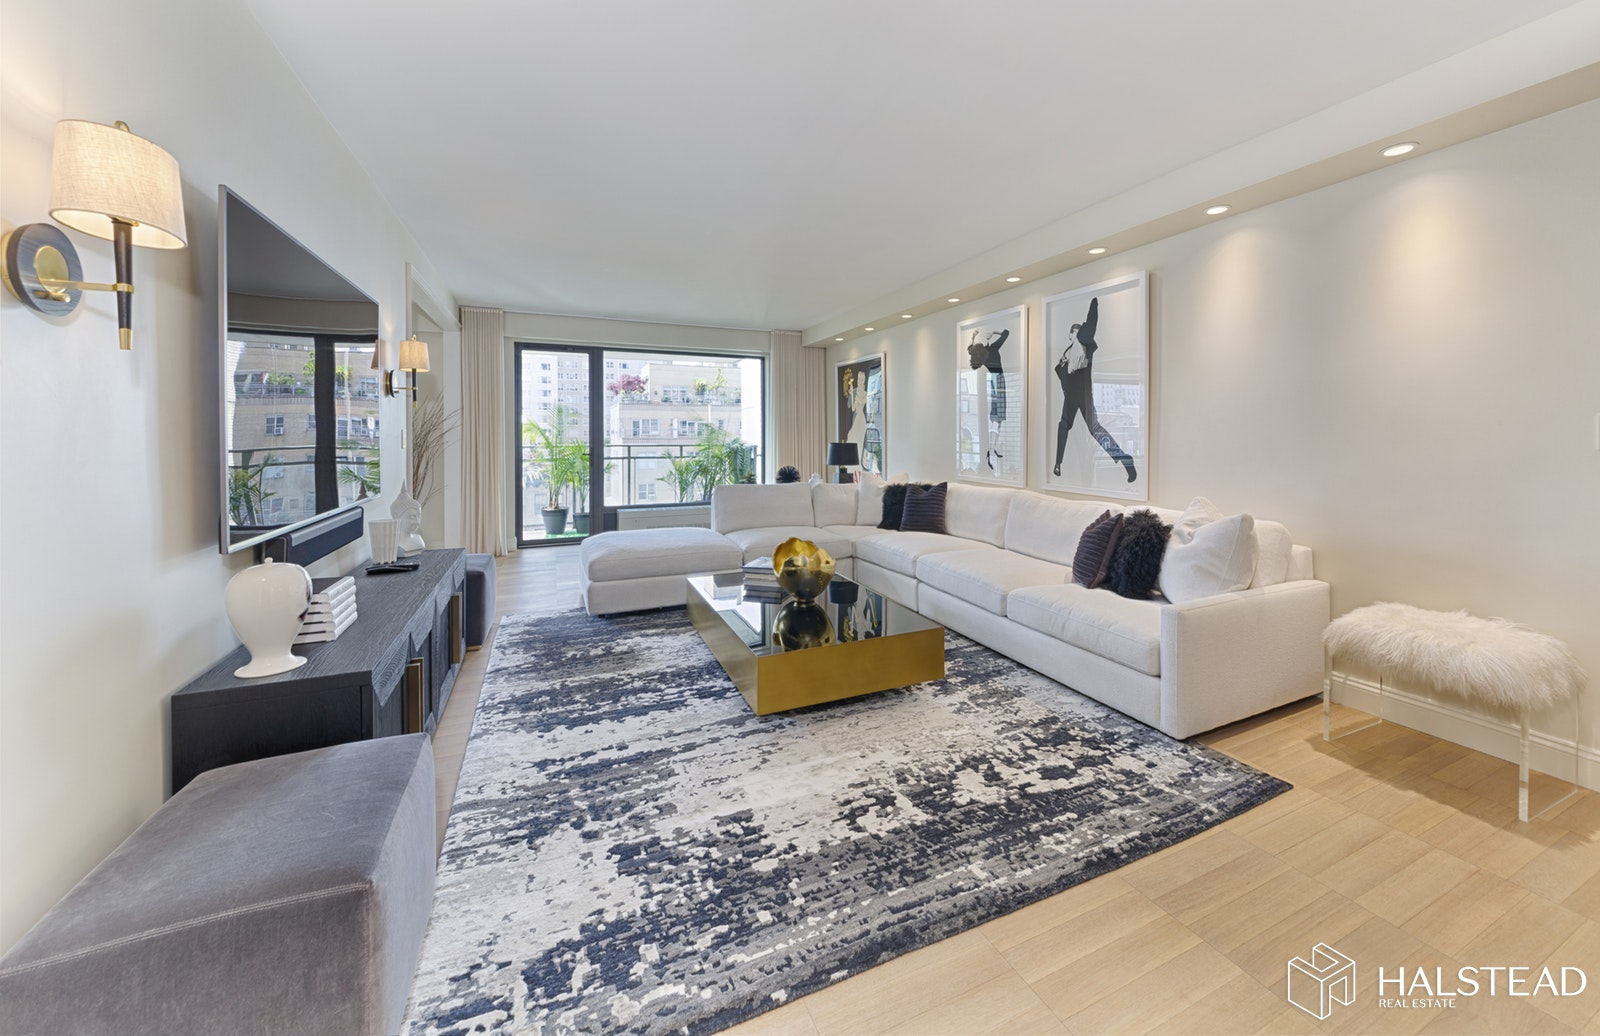 303 East 57th Street 17l, Midtown East, NYC, 10022, $1,395,000, Property For Sale, Halstead Real Estate, Photo 9